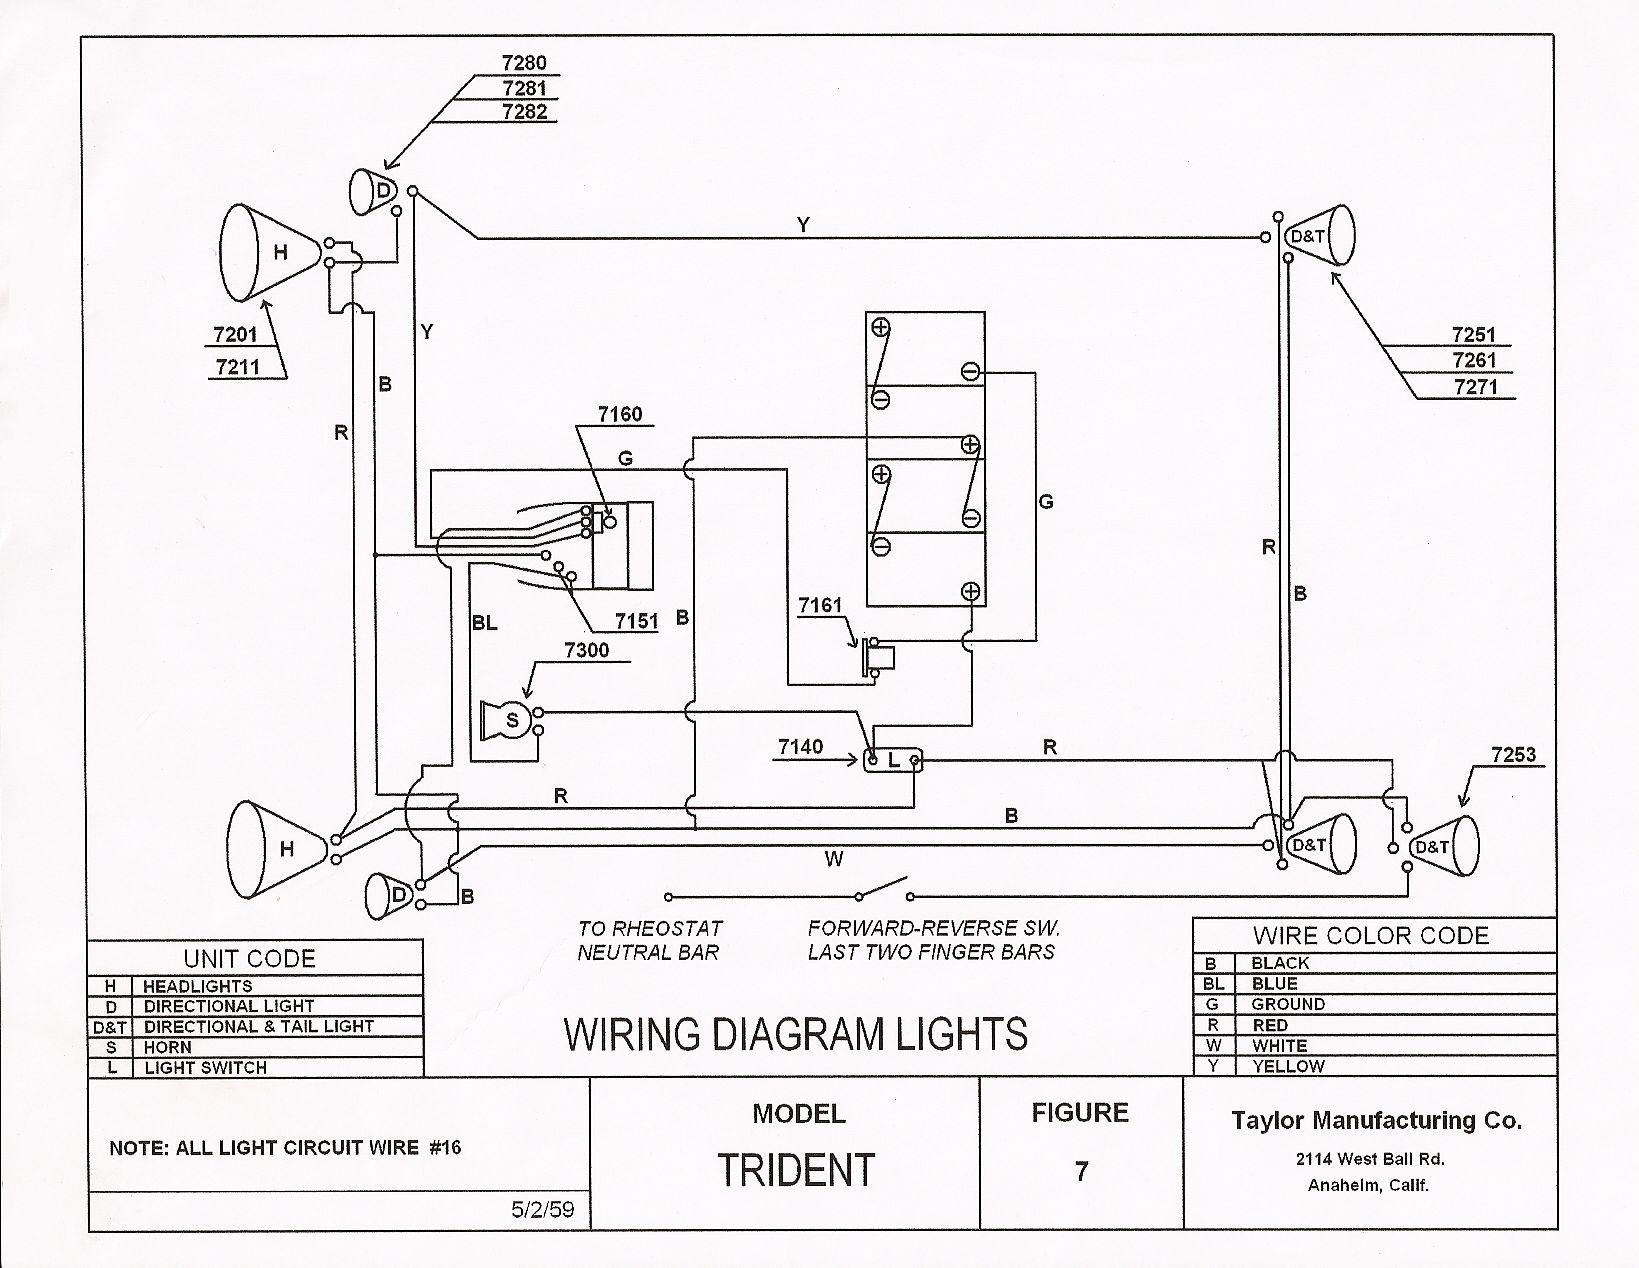 trident01 vintagegolfcartparts com wiring diagram for a 36 volt taylor dunn cart at soozxer.org